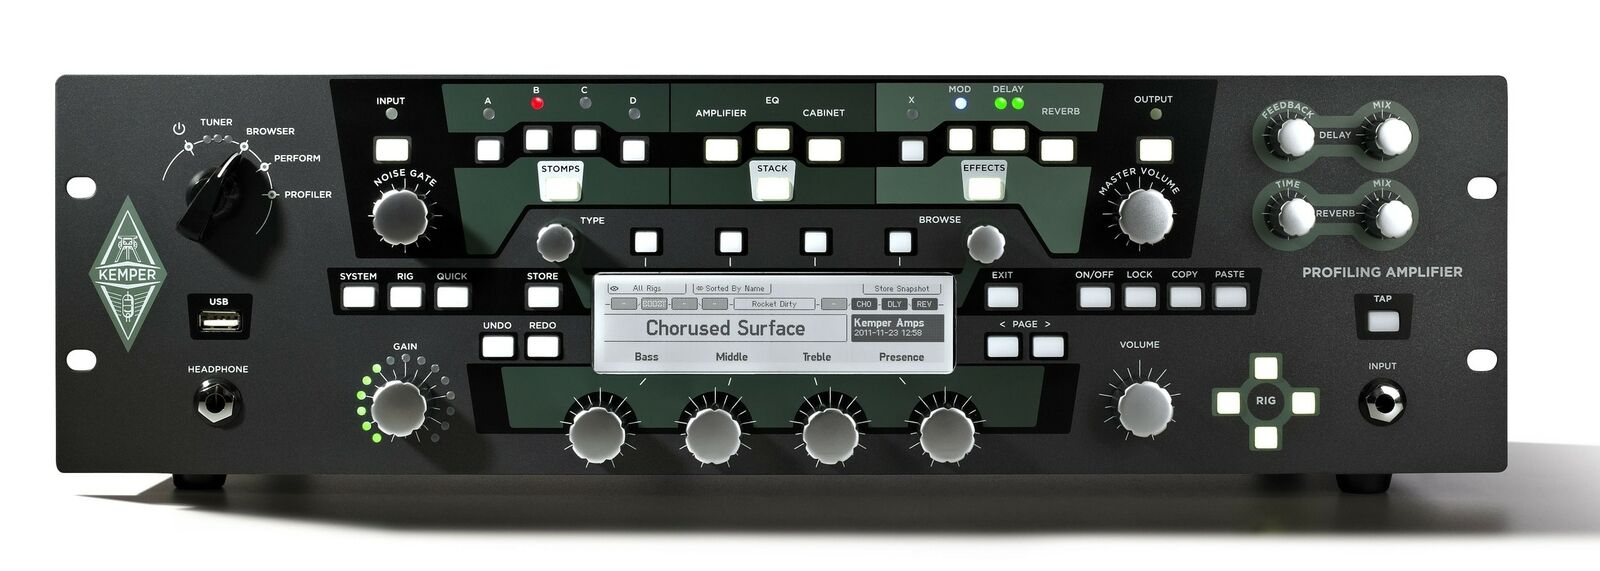 Kemper Profiler PowerRack Rackmount Guitar Amplifier. Buy it now for 1905.00